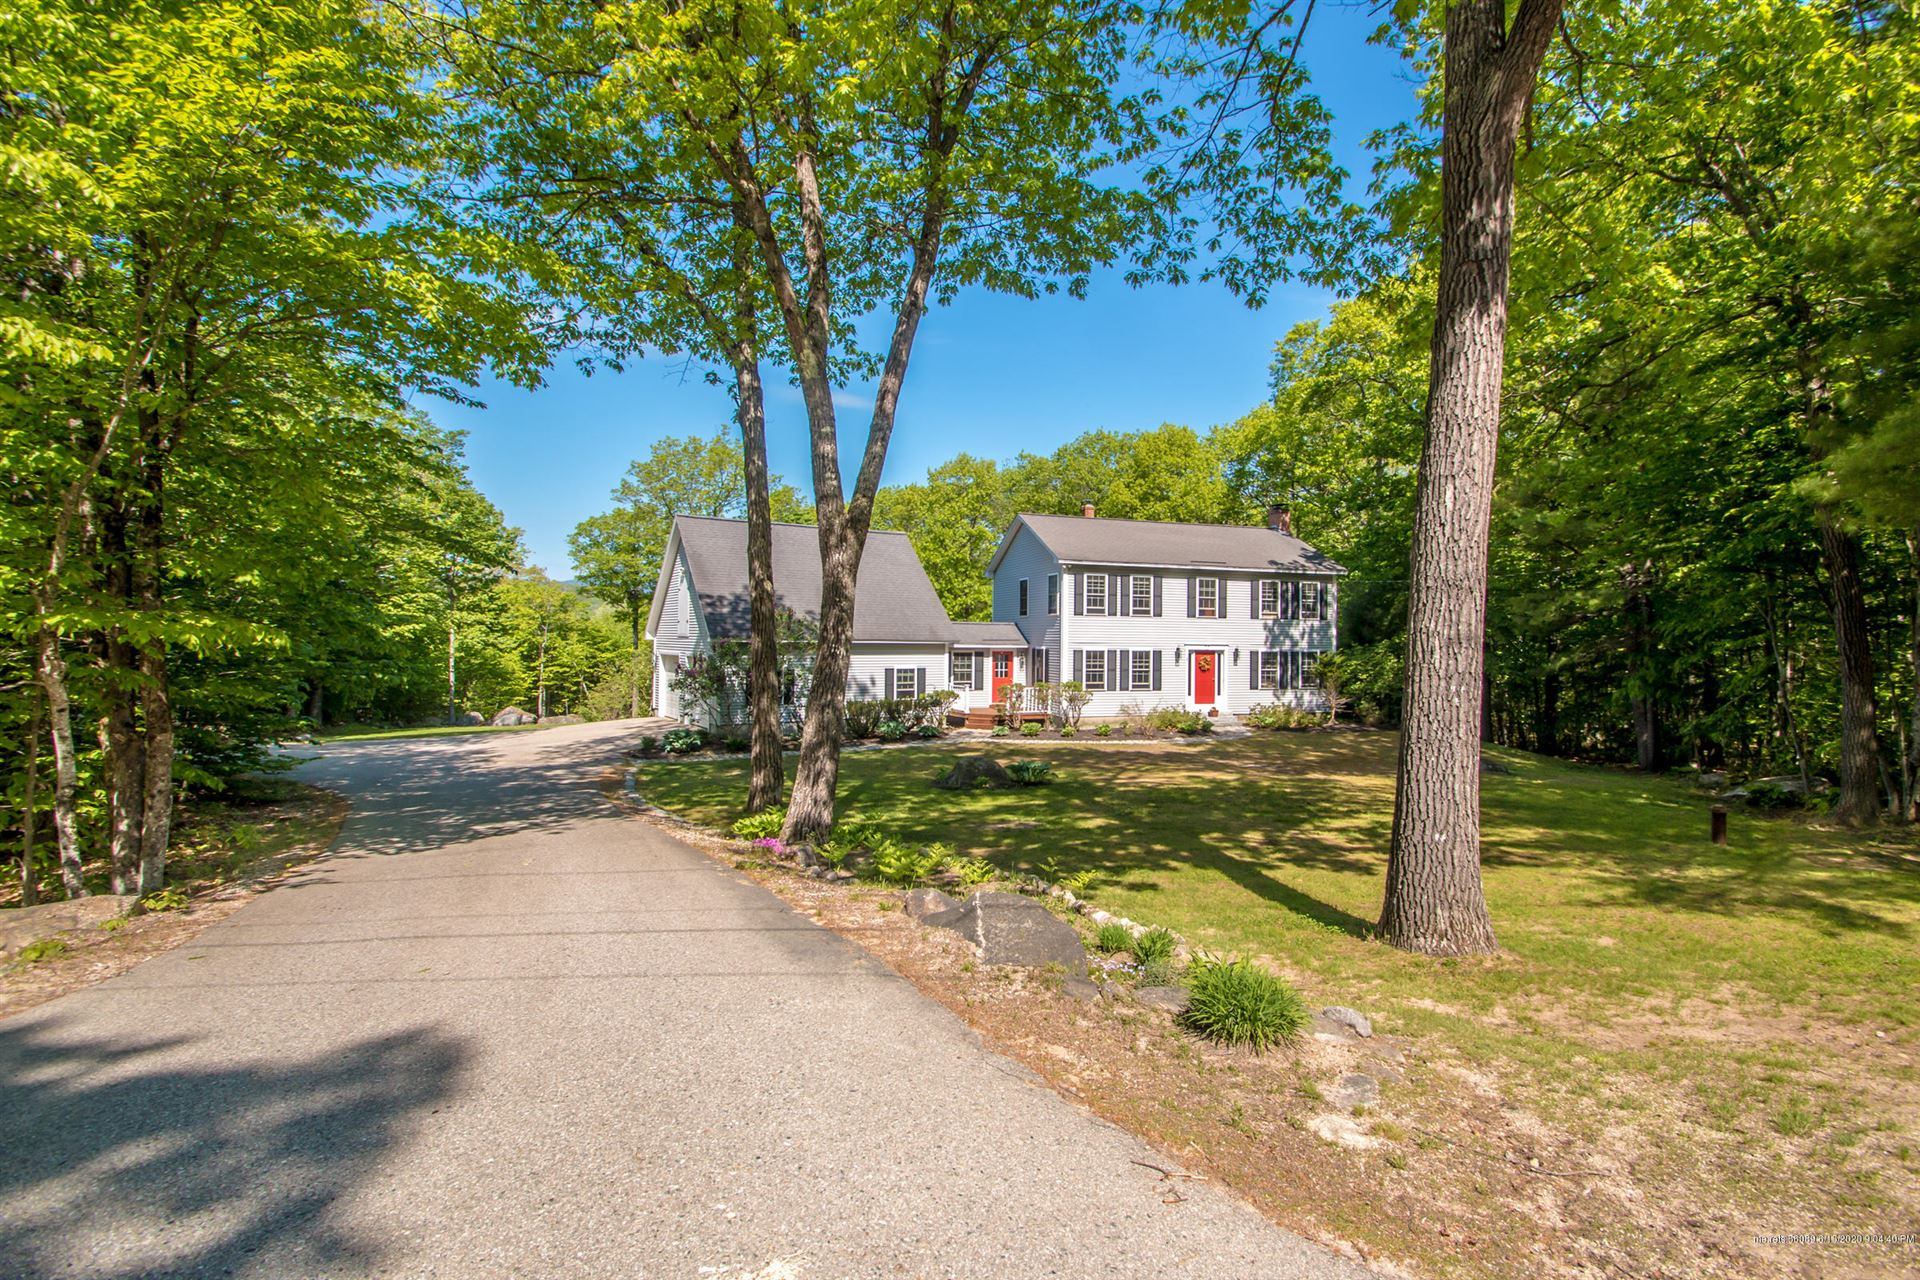 Photo of 19 Oak Ridge Street, Fryeburg, ME 04037 (MLS # 1454158)